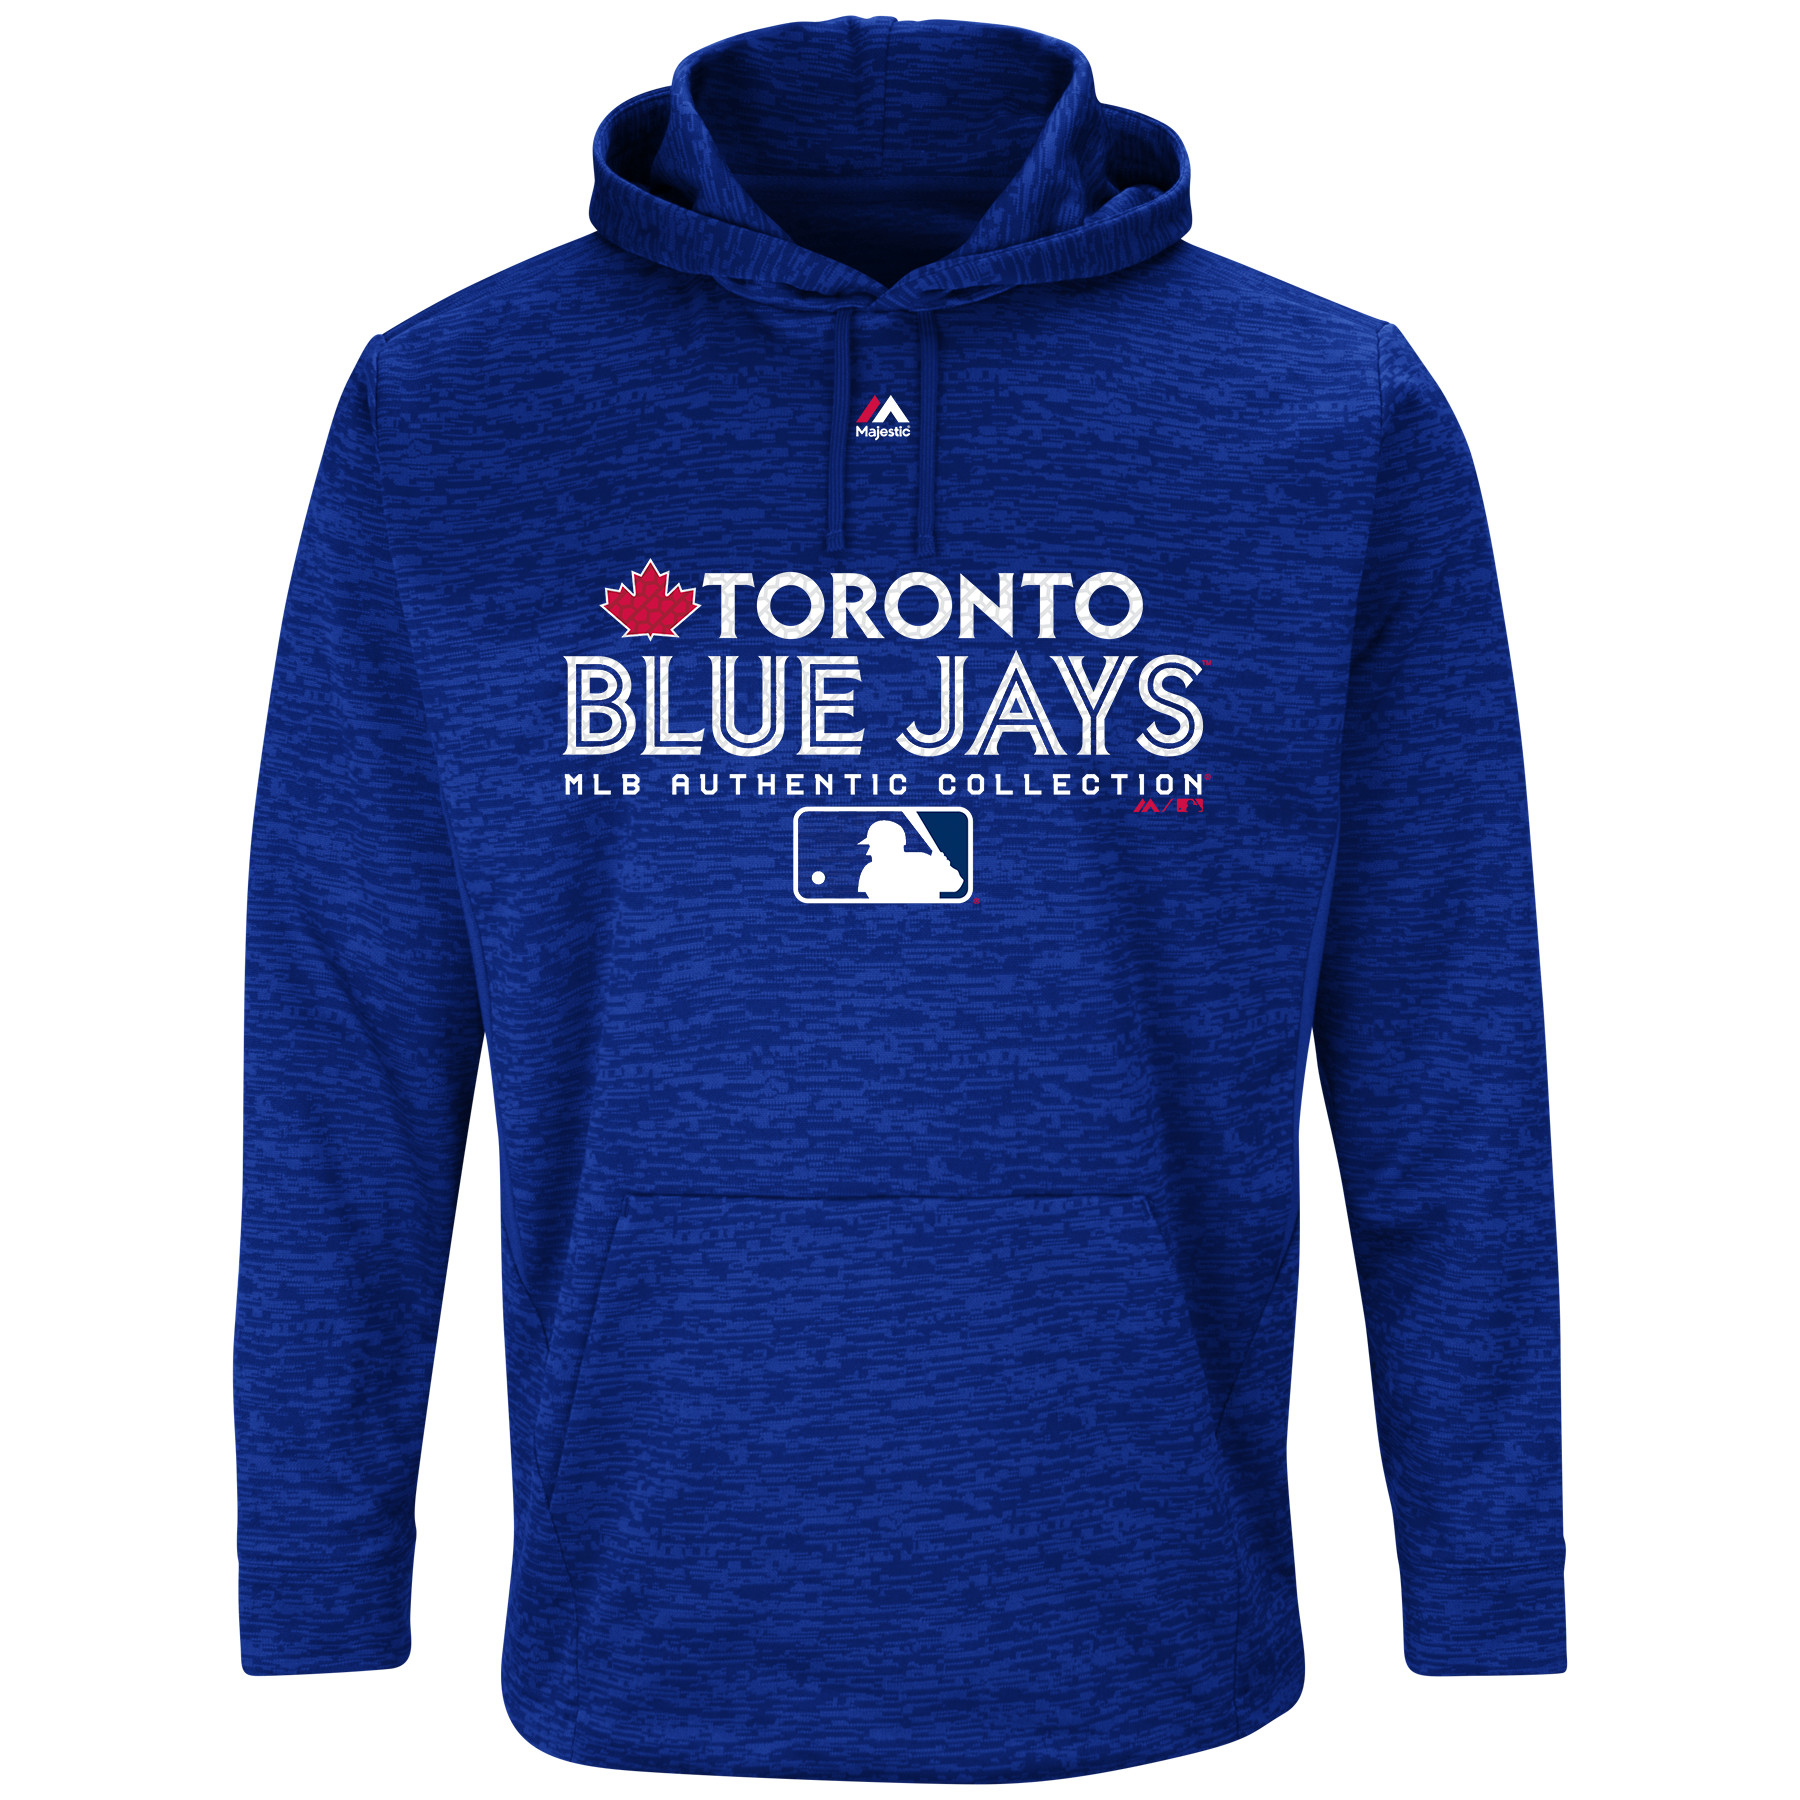 Toronto Blue Jays Majestic Authentic Collection Team Drive Ultra-Streak Fleece Pullover Hoodie - Royal